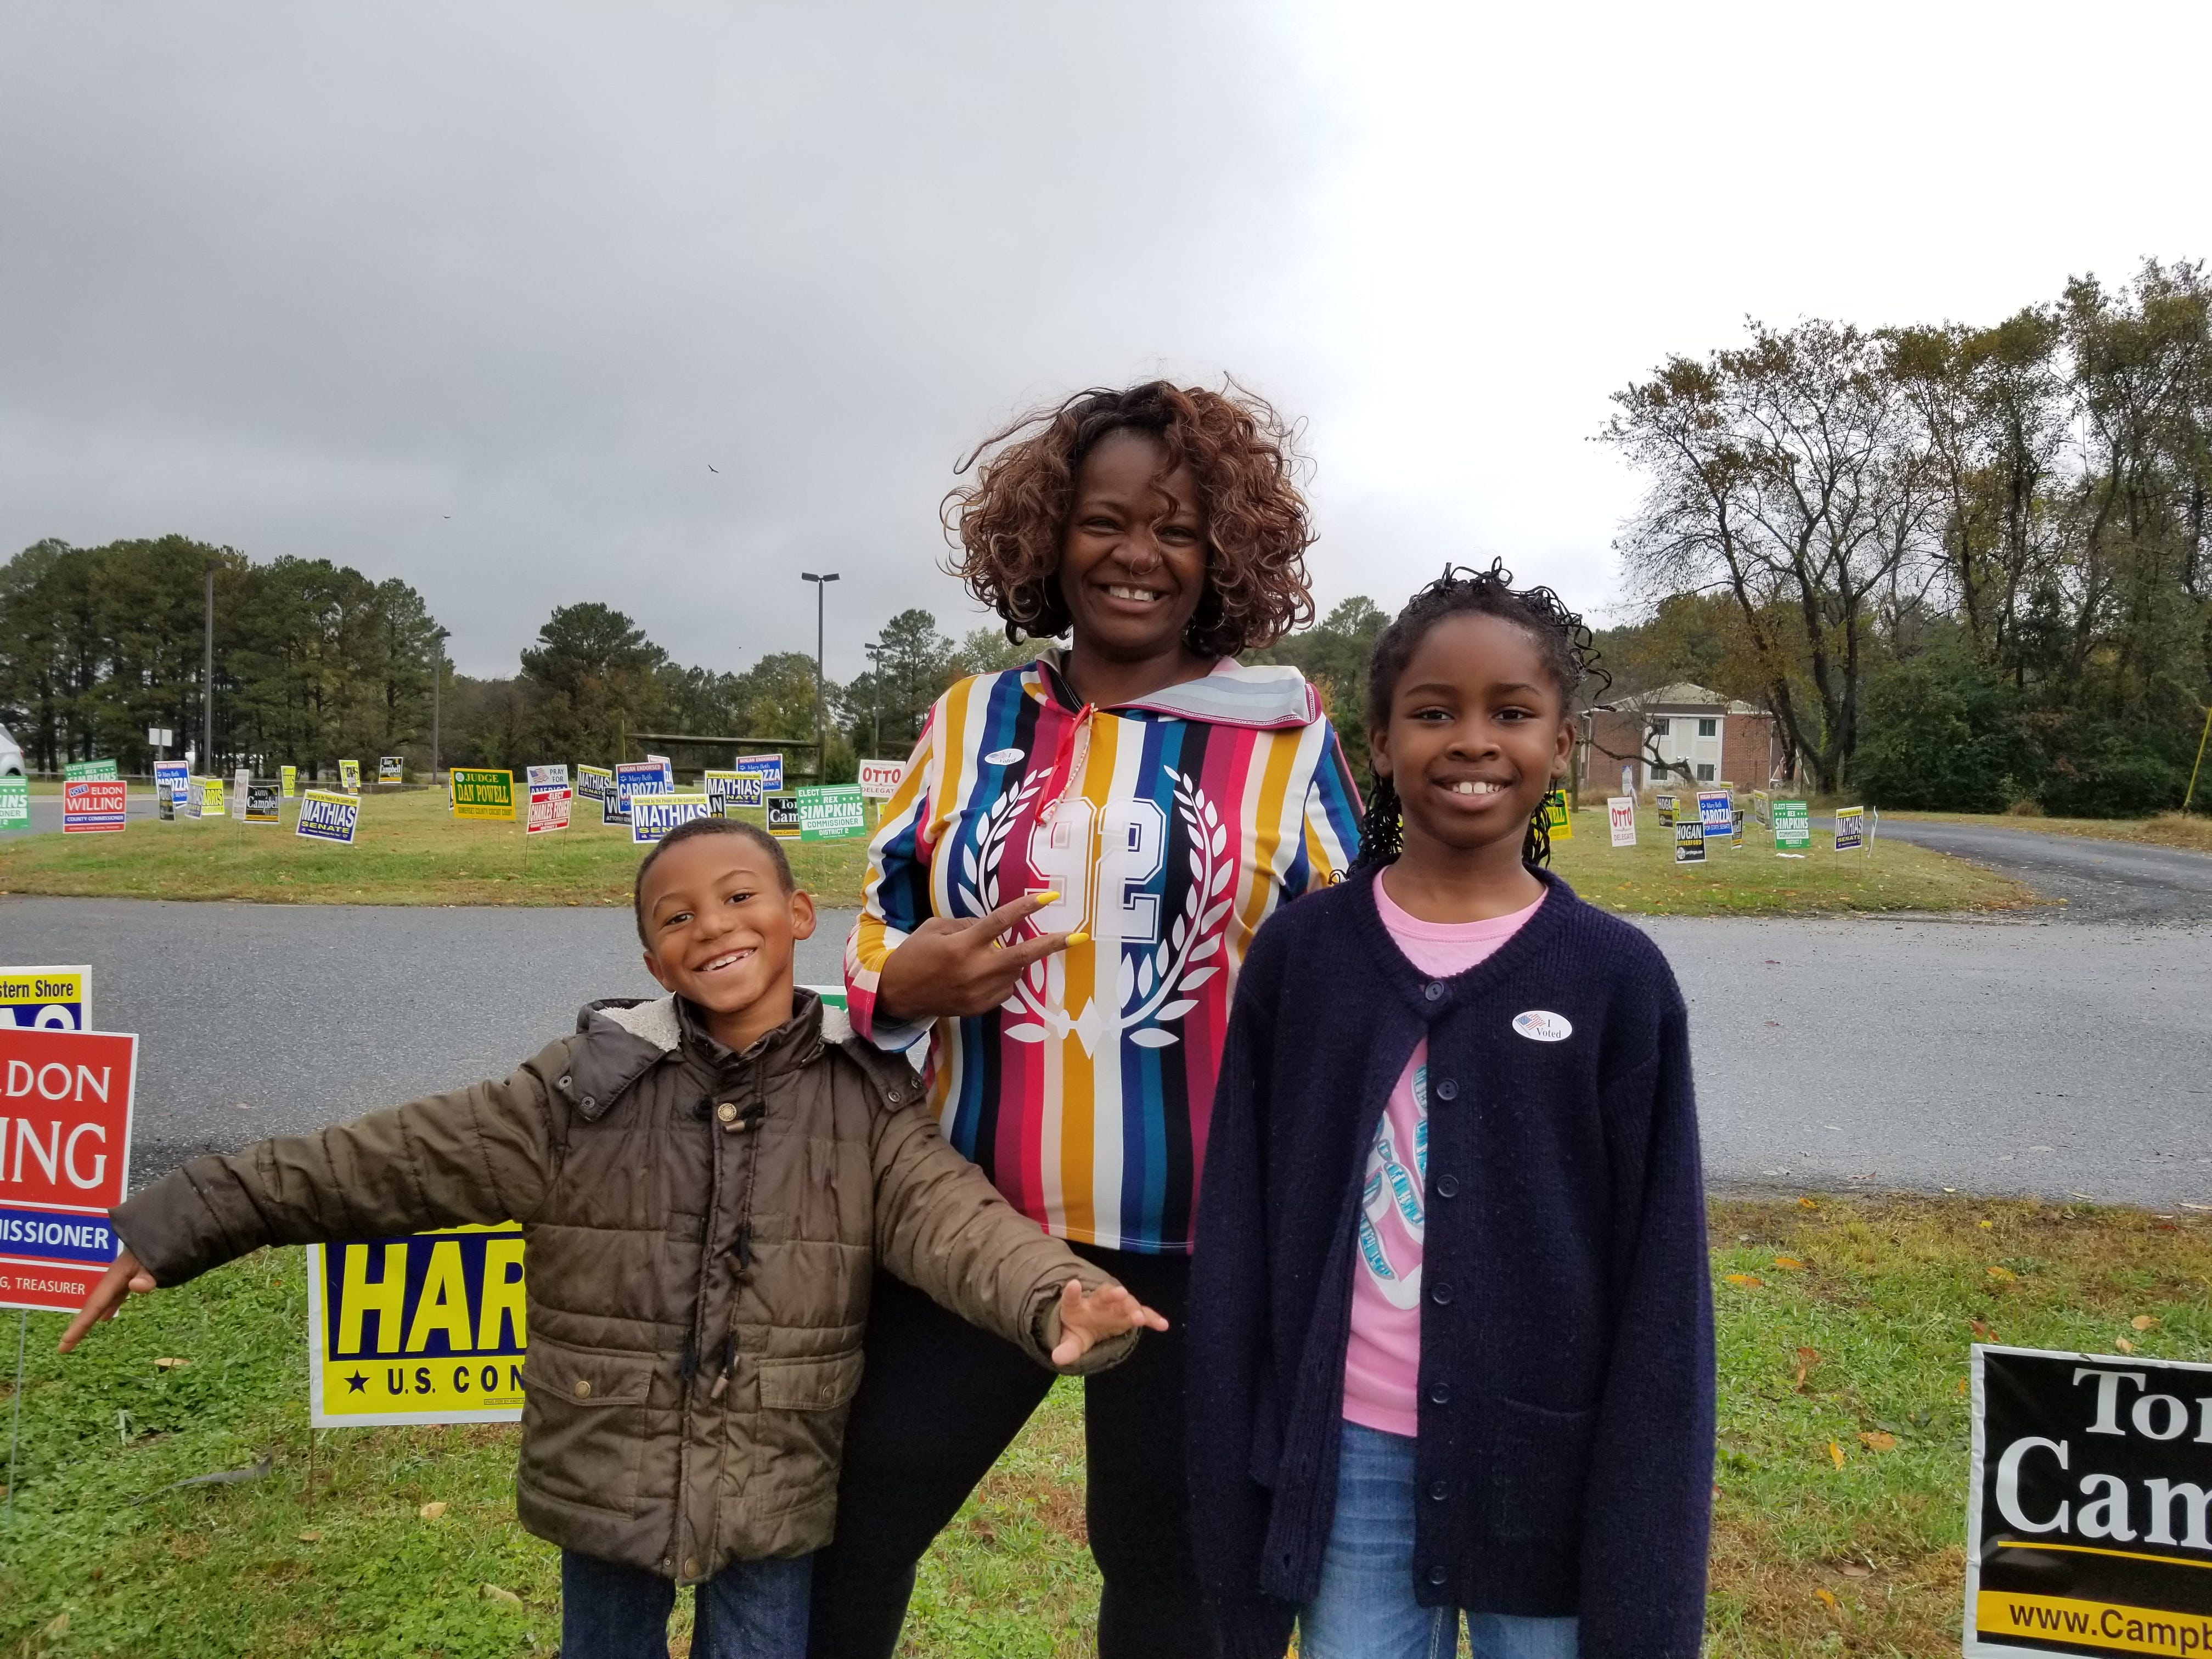 Valentina Downing of Princes sAnne brought her grandchildren, Adyahnn Burrell, 6, and Naomi Sell, 9, with her to the polls at Greenwood Intermediate School.